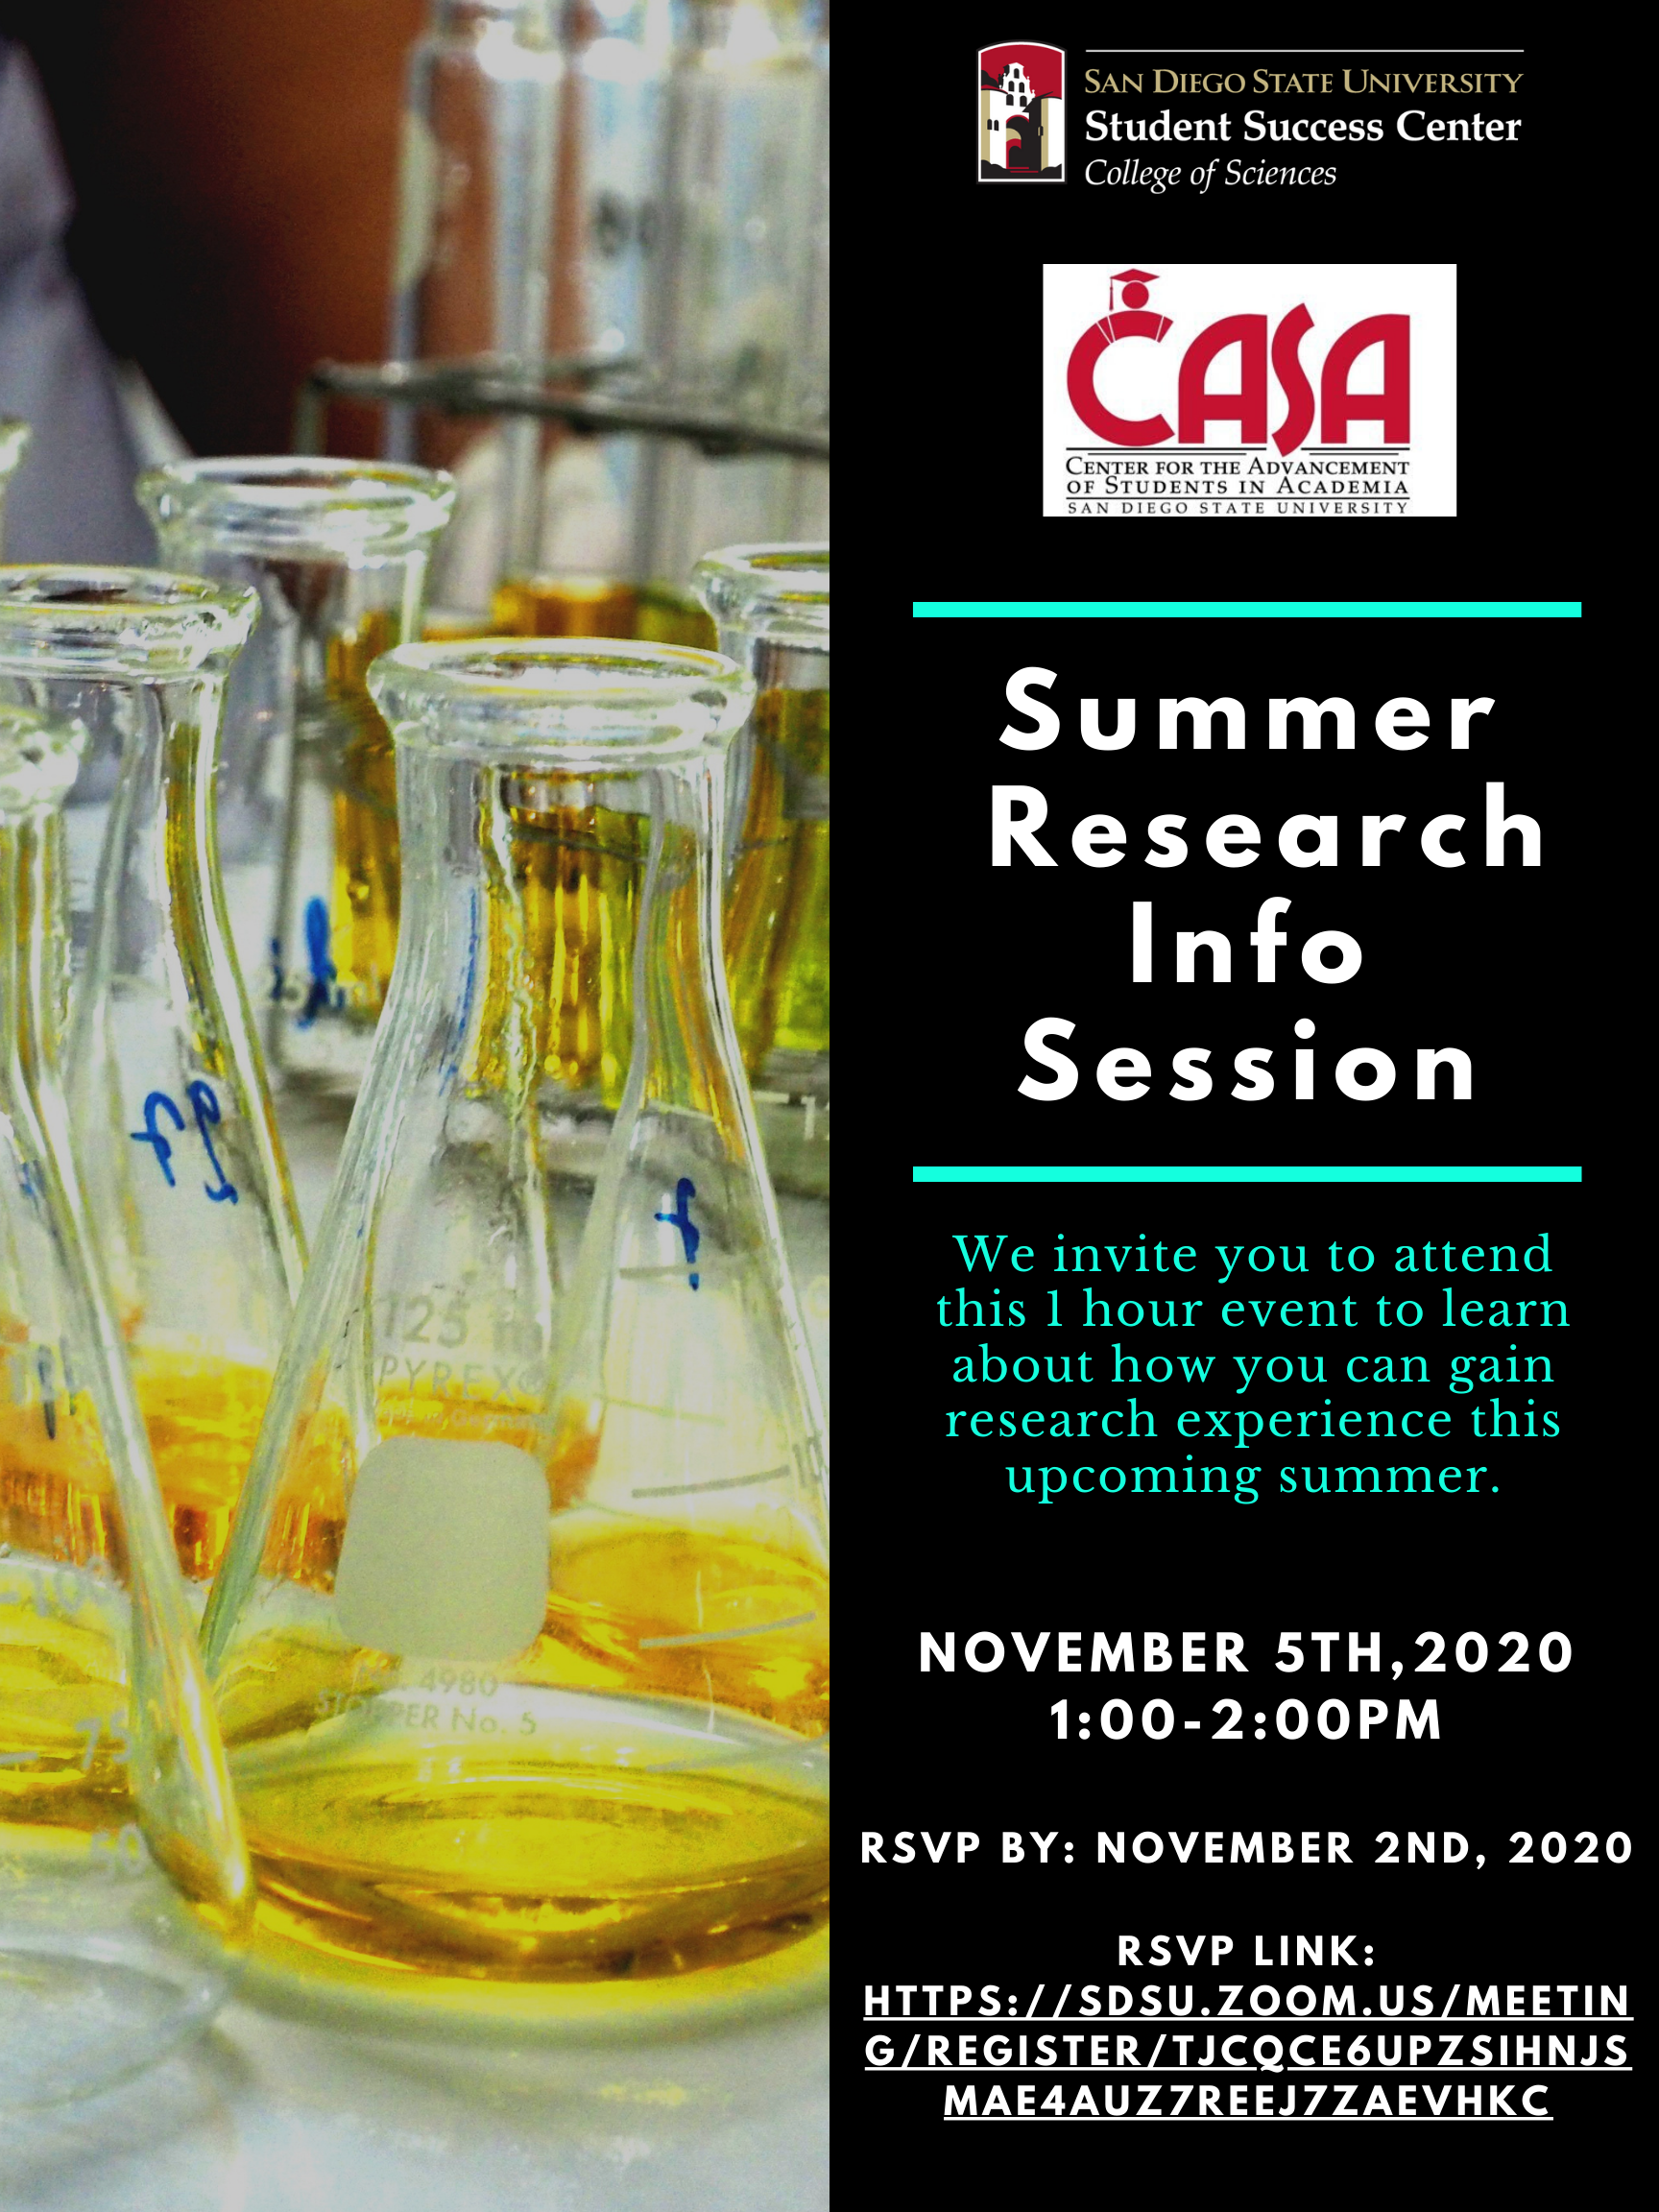 Summer research info session flyer